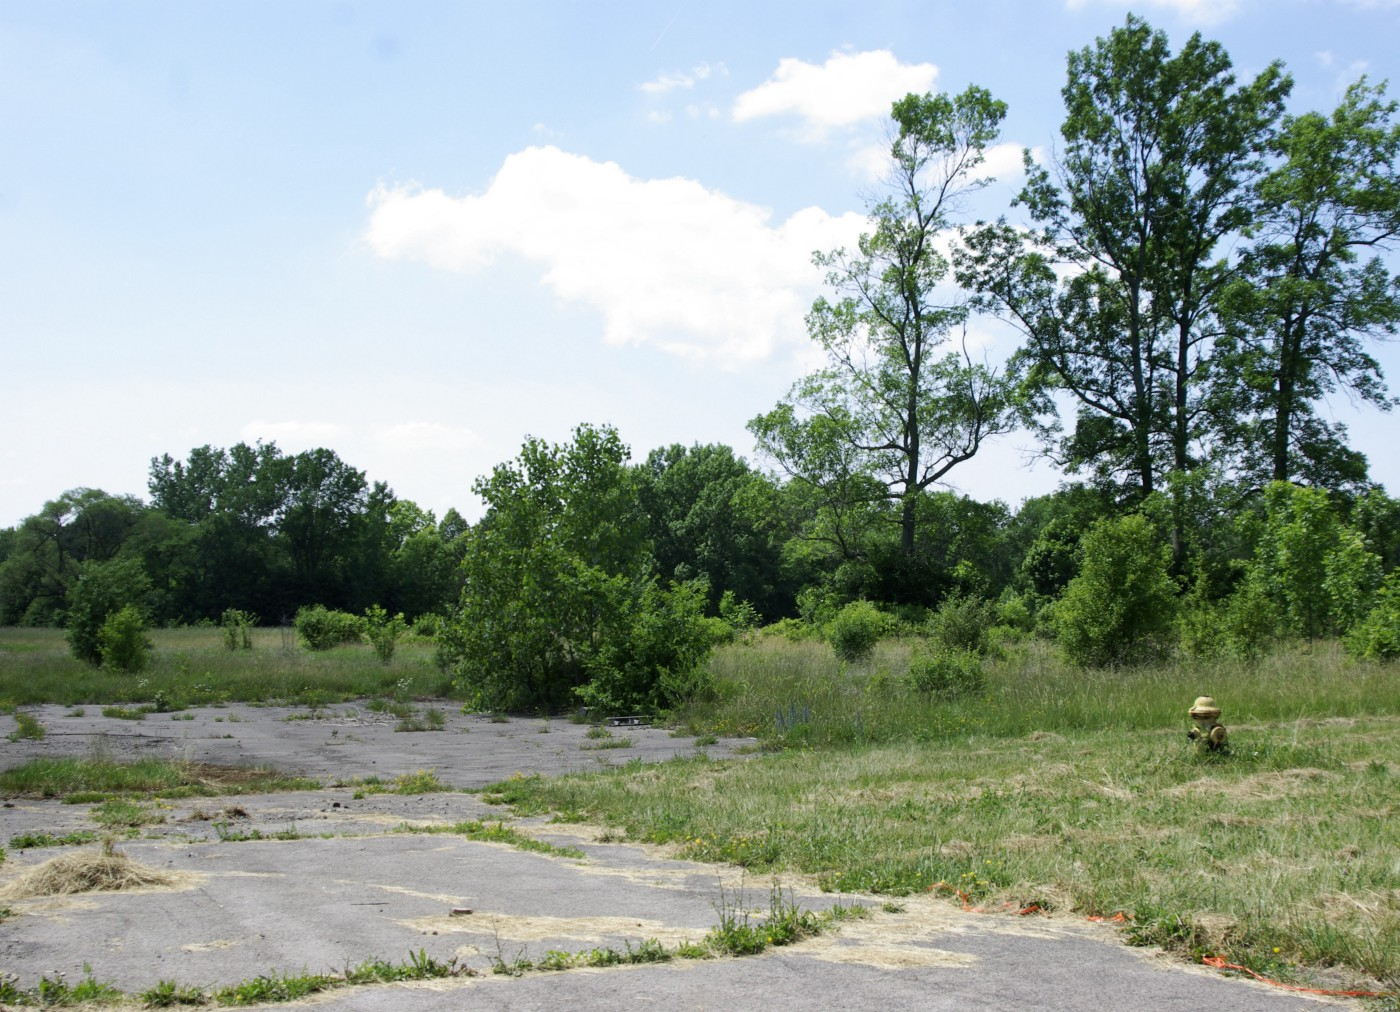 An abandoned parking lot in the vicinity of Love Canal